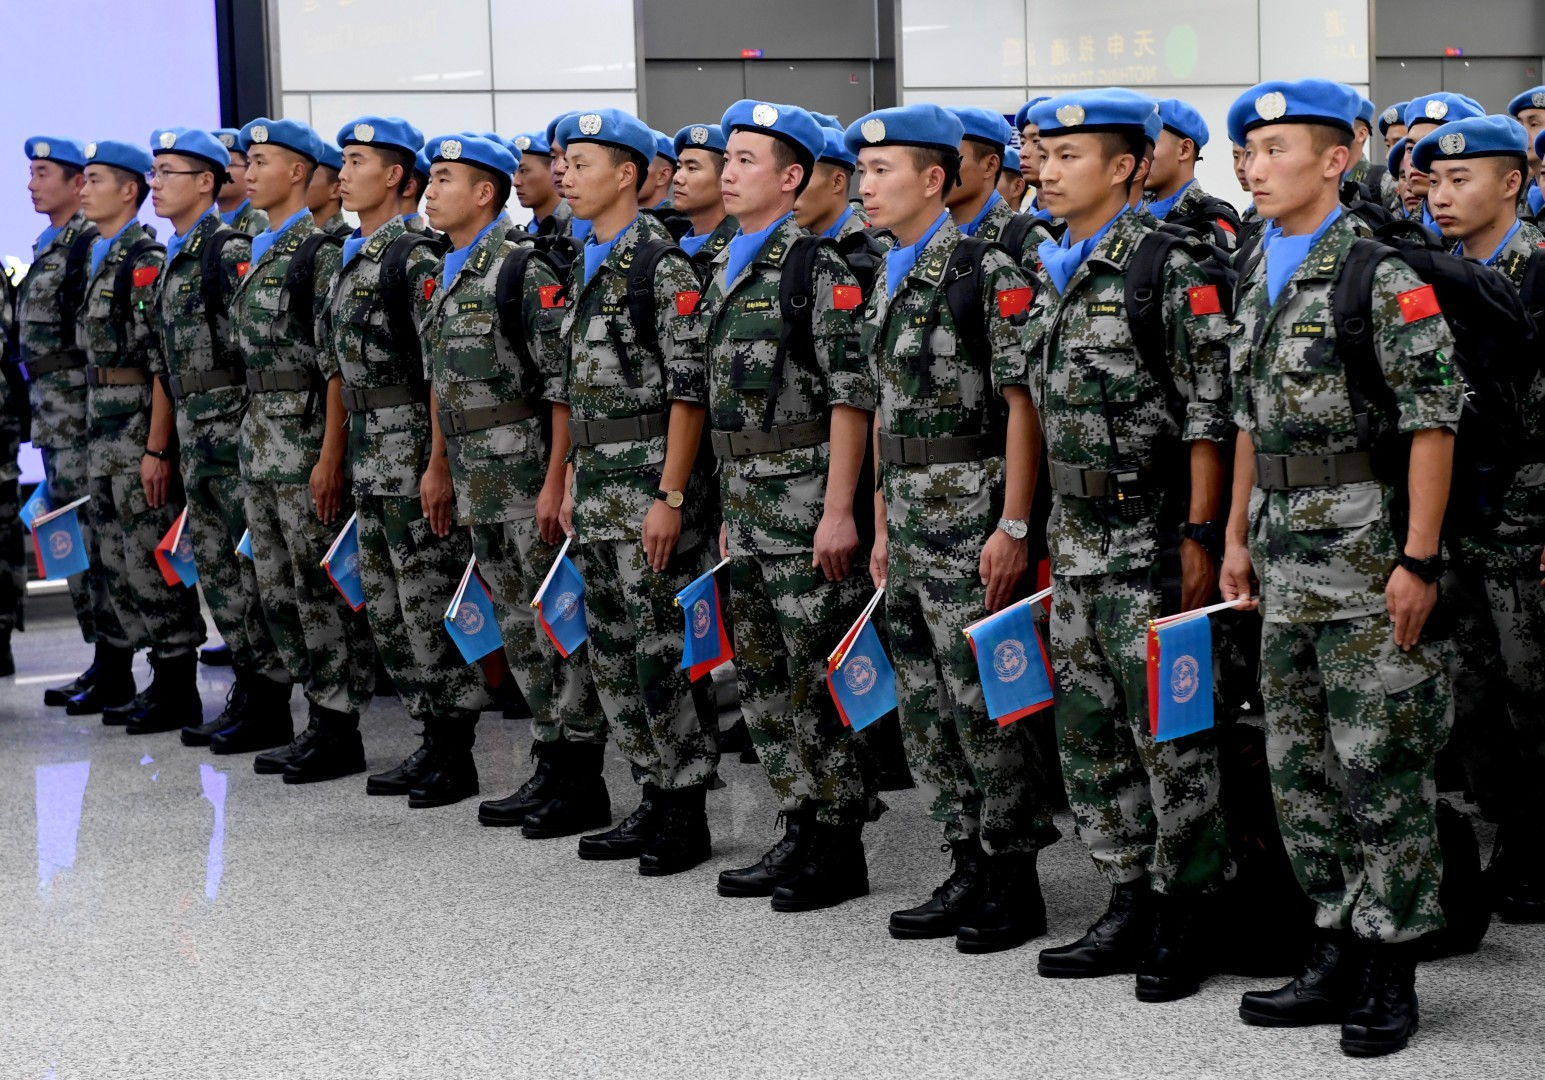 To intervene or not? China's foreign policy experiment in South